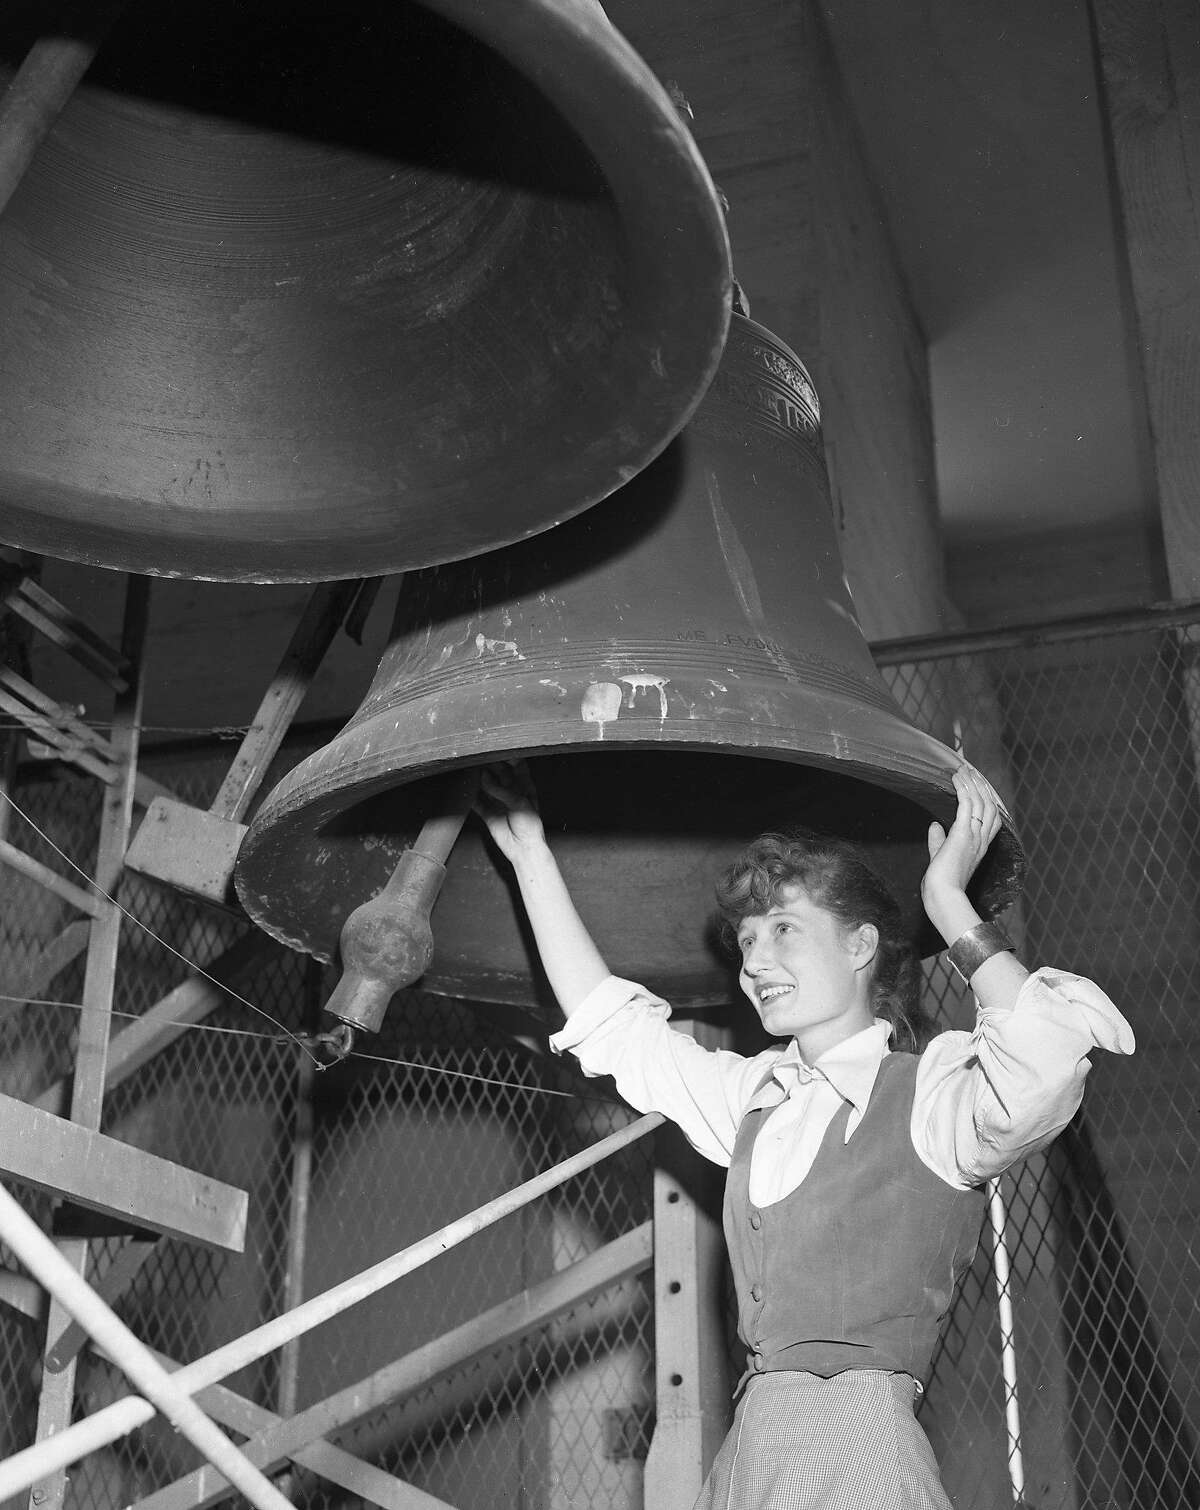 Bells of the Hoover Institution Tower on the Stanford University Carillon player Olwen Wymark looks at bells Photos shot November 3, 1953